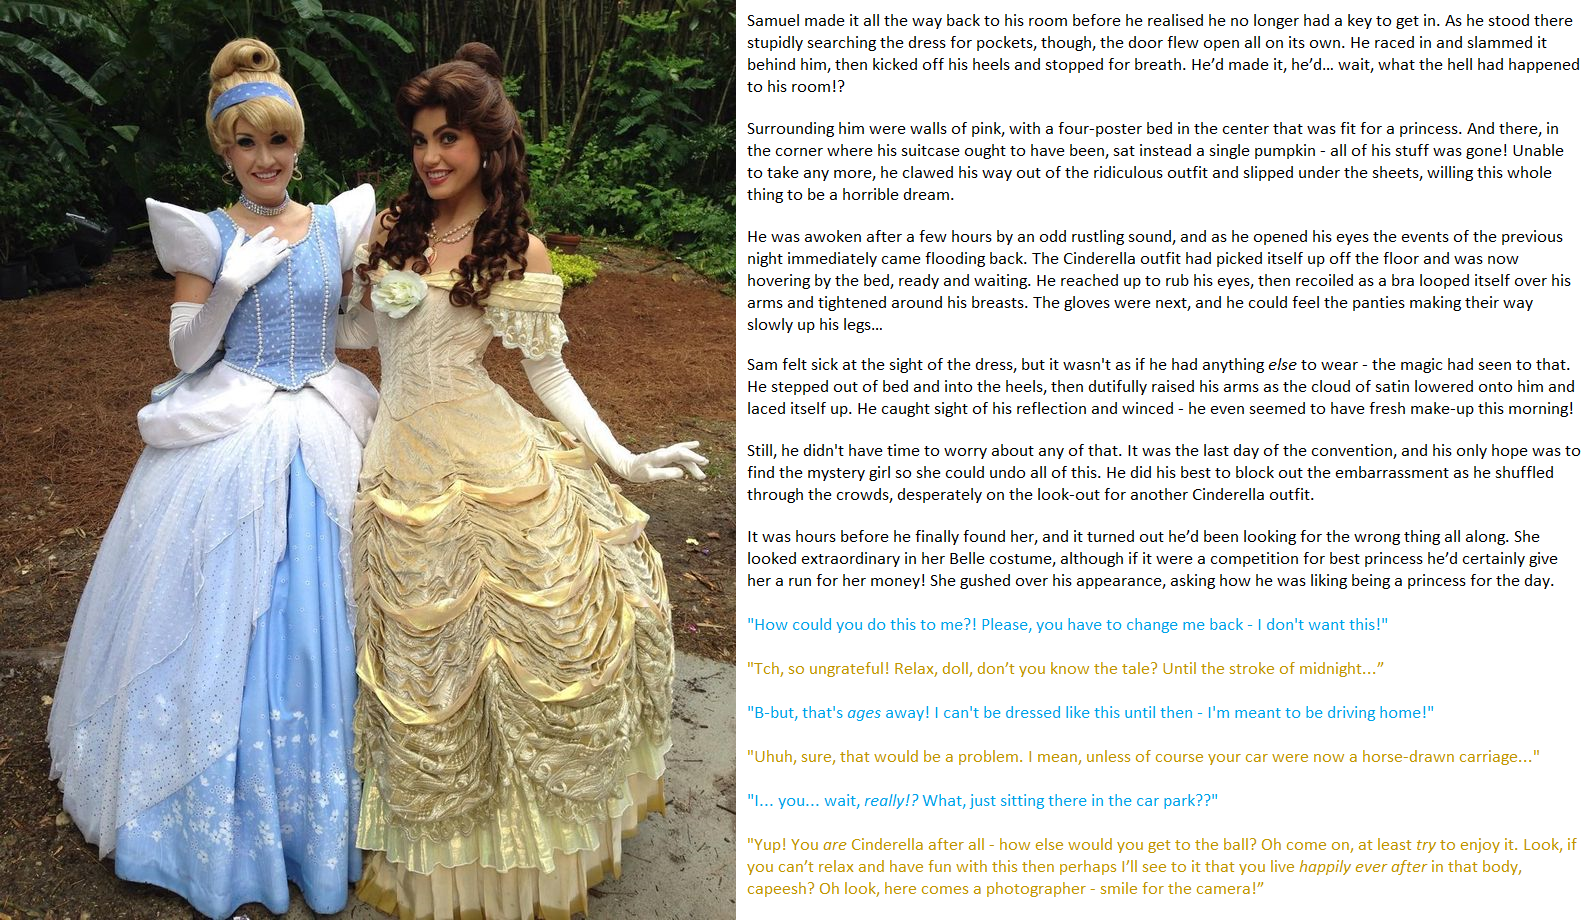 Emily's TG Captions: A Princess For a Day Belle of the